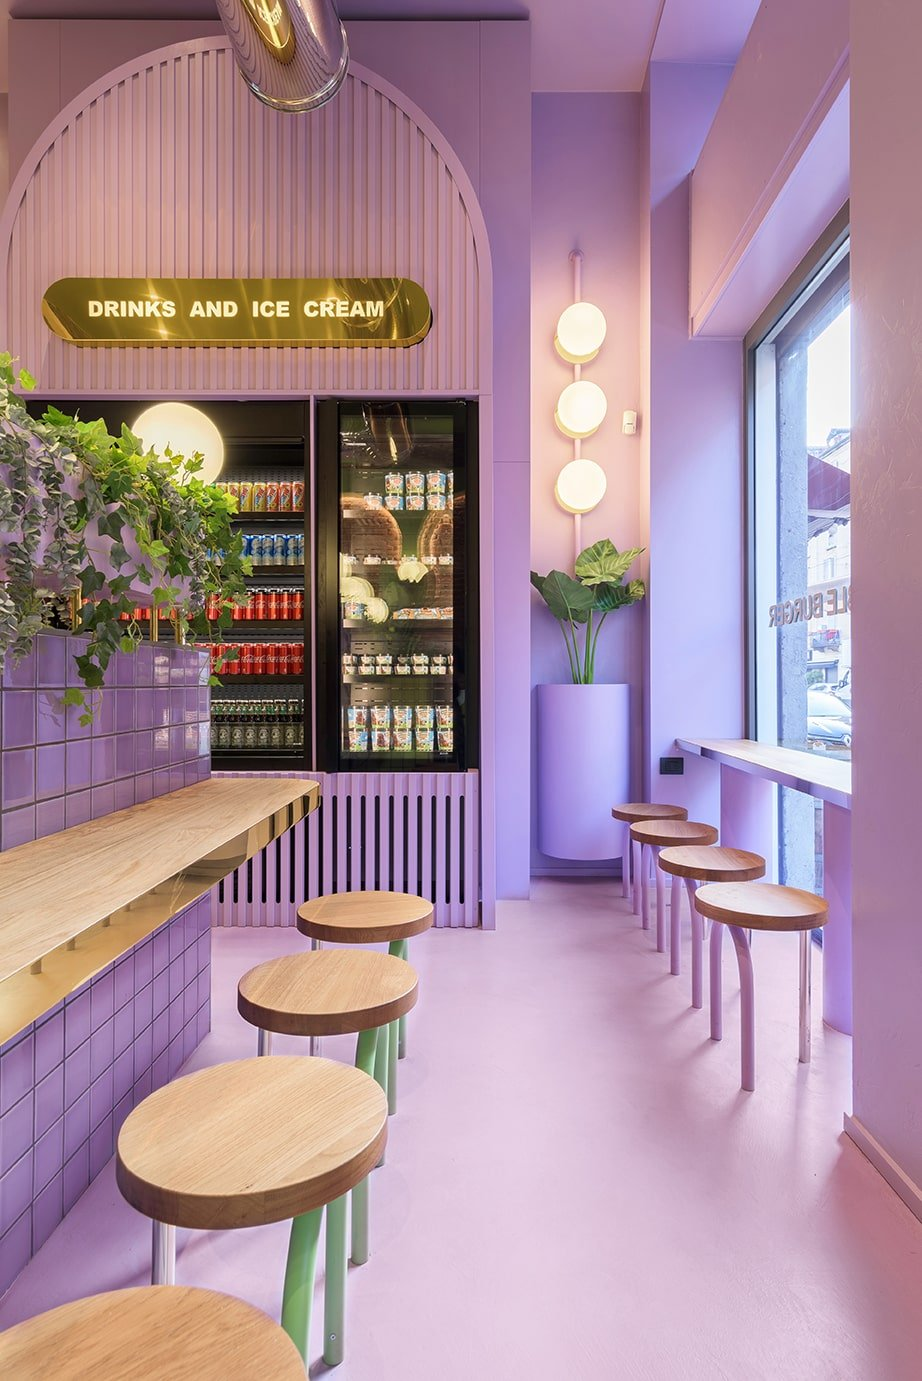 On the far wall of the purple side of the restaurant is the large built-in fridge for the various drinks and beverages the restaurant offers.